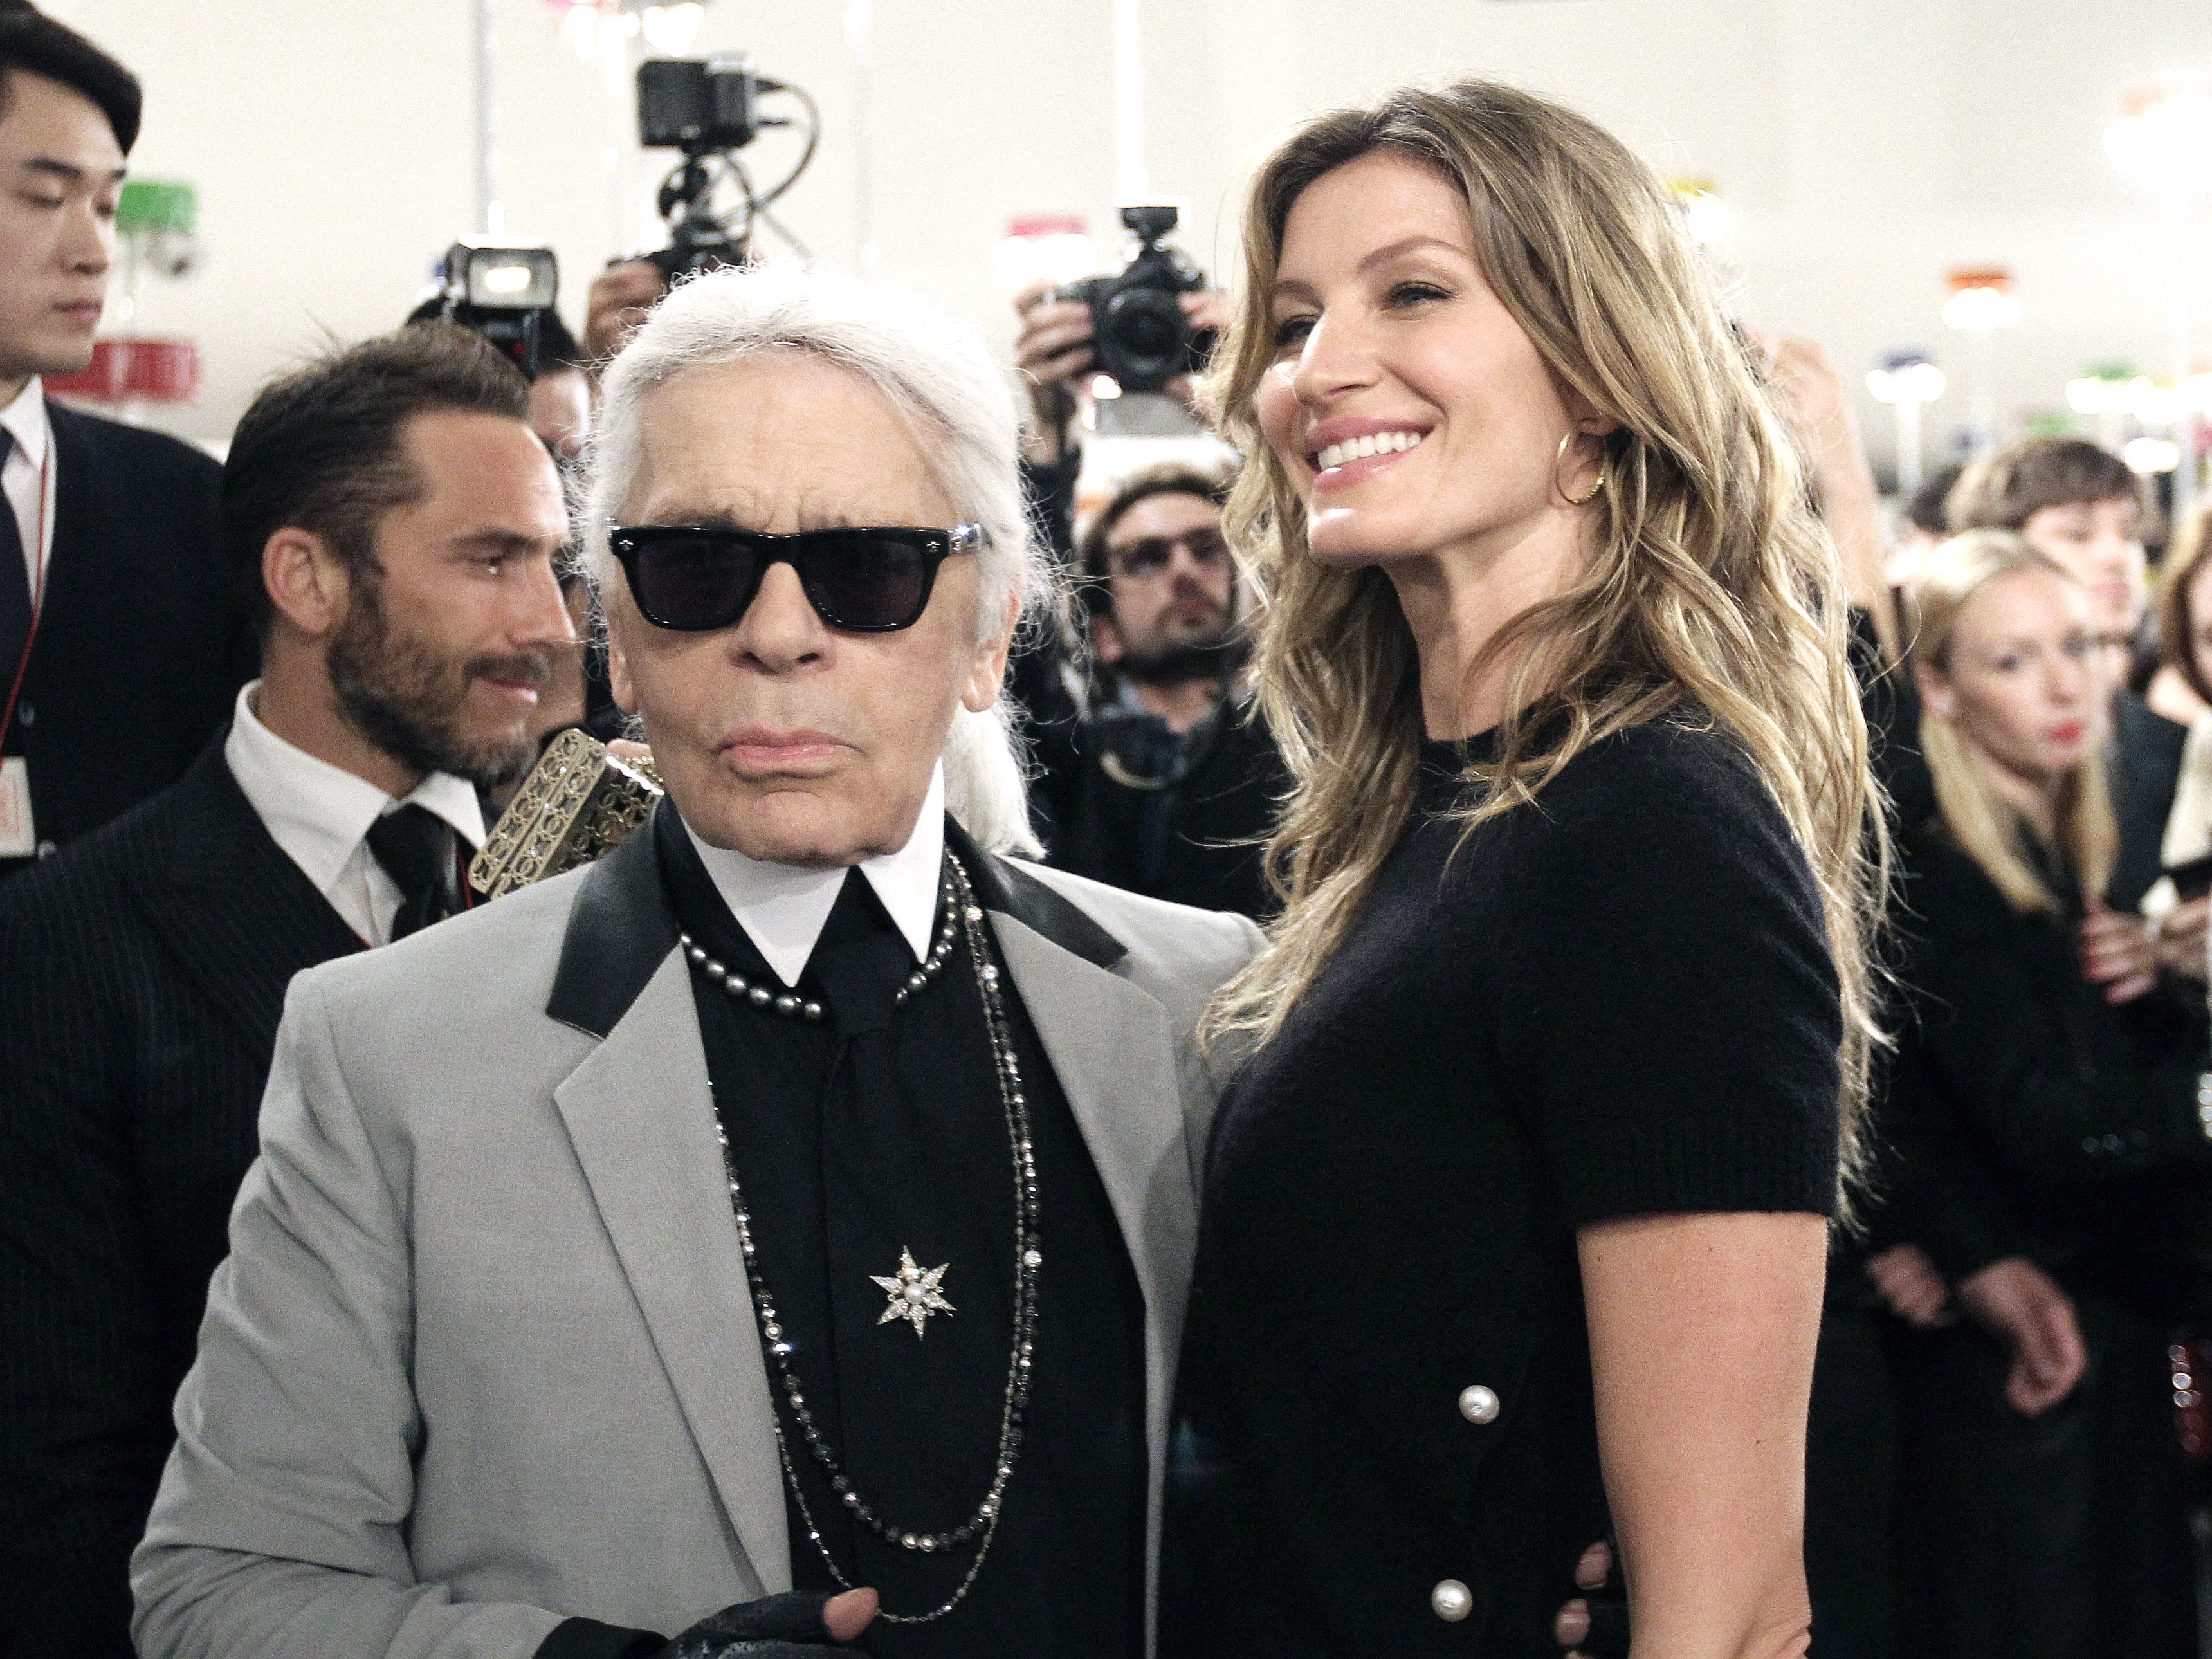 Karl Lagerfeld  poses with Gisele Bundchen after the presentation of his 2015-2016 Chanel cruise collection at the Dongdaemun Design Plaza in Seoul, South Korea,  May 4, 2015.